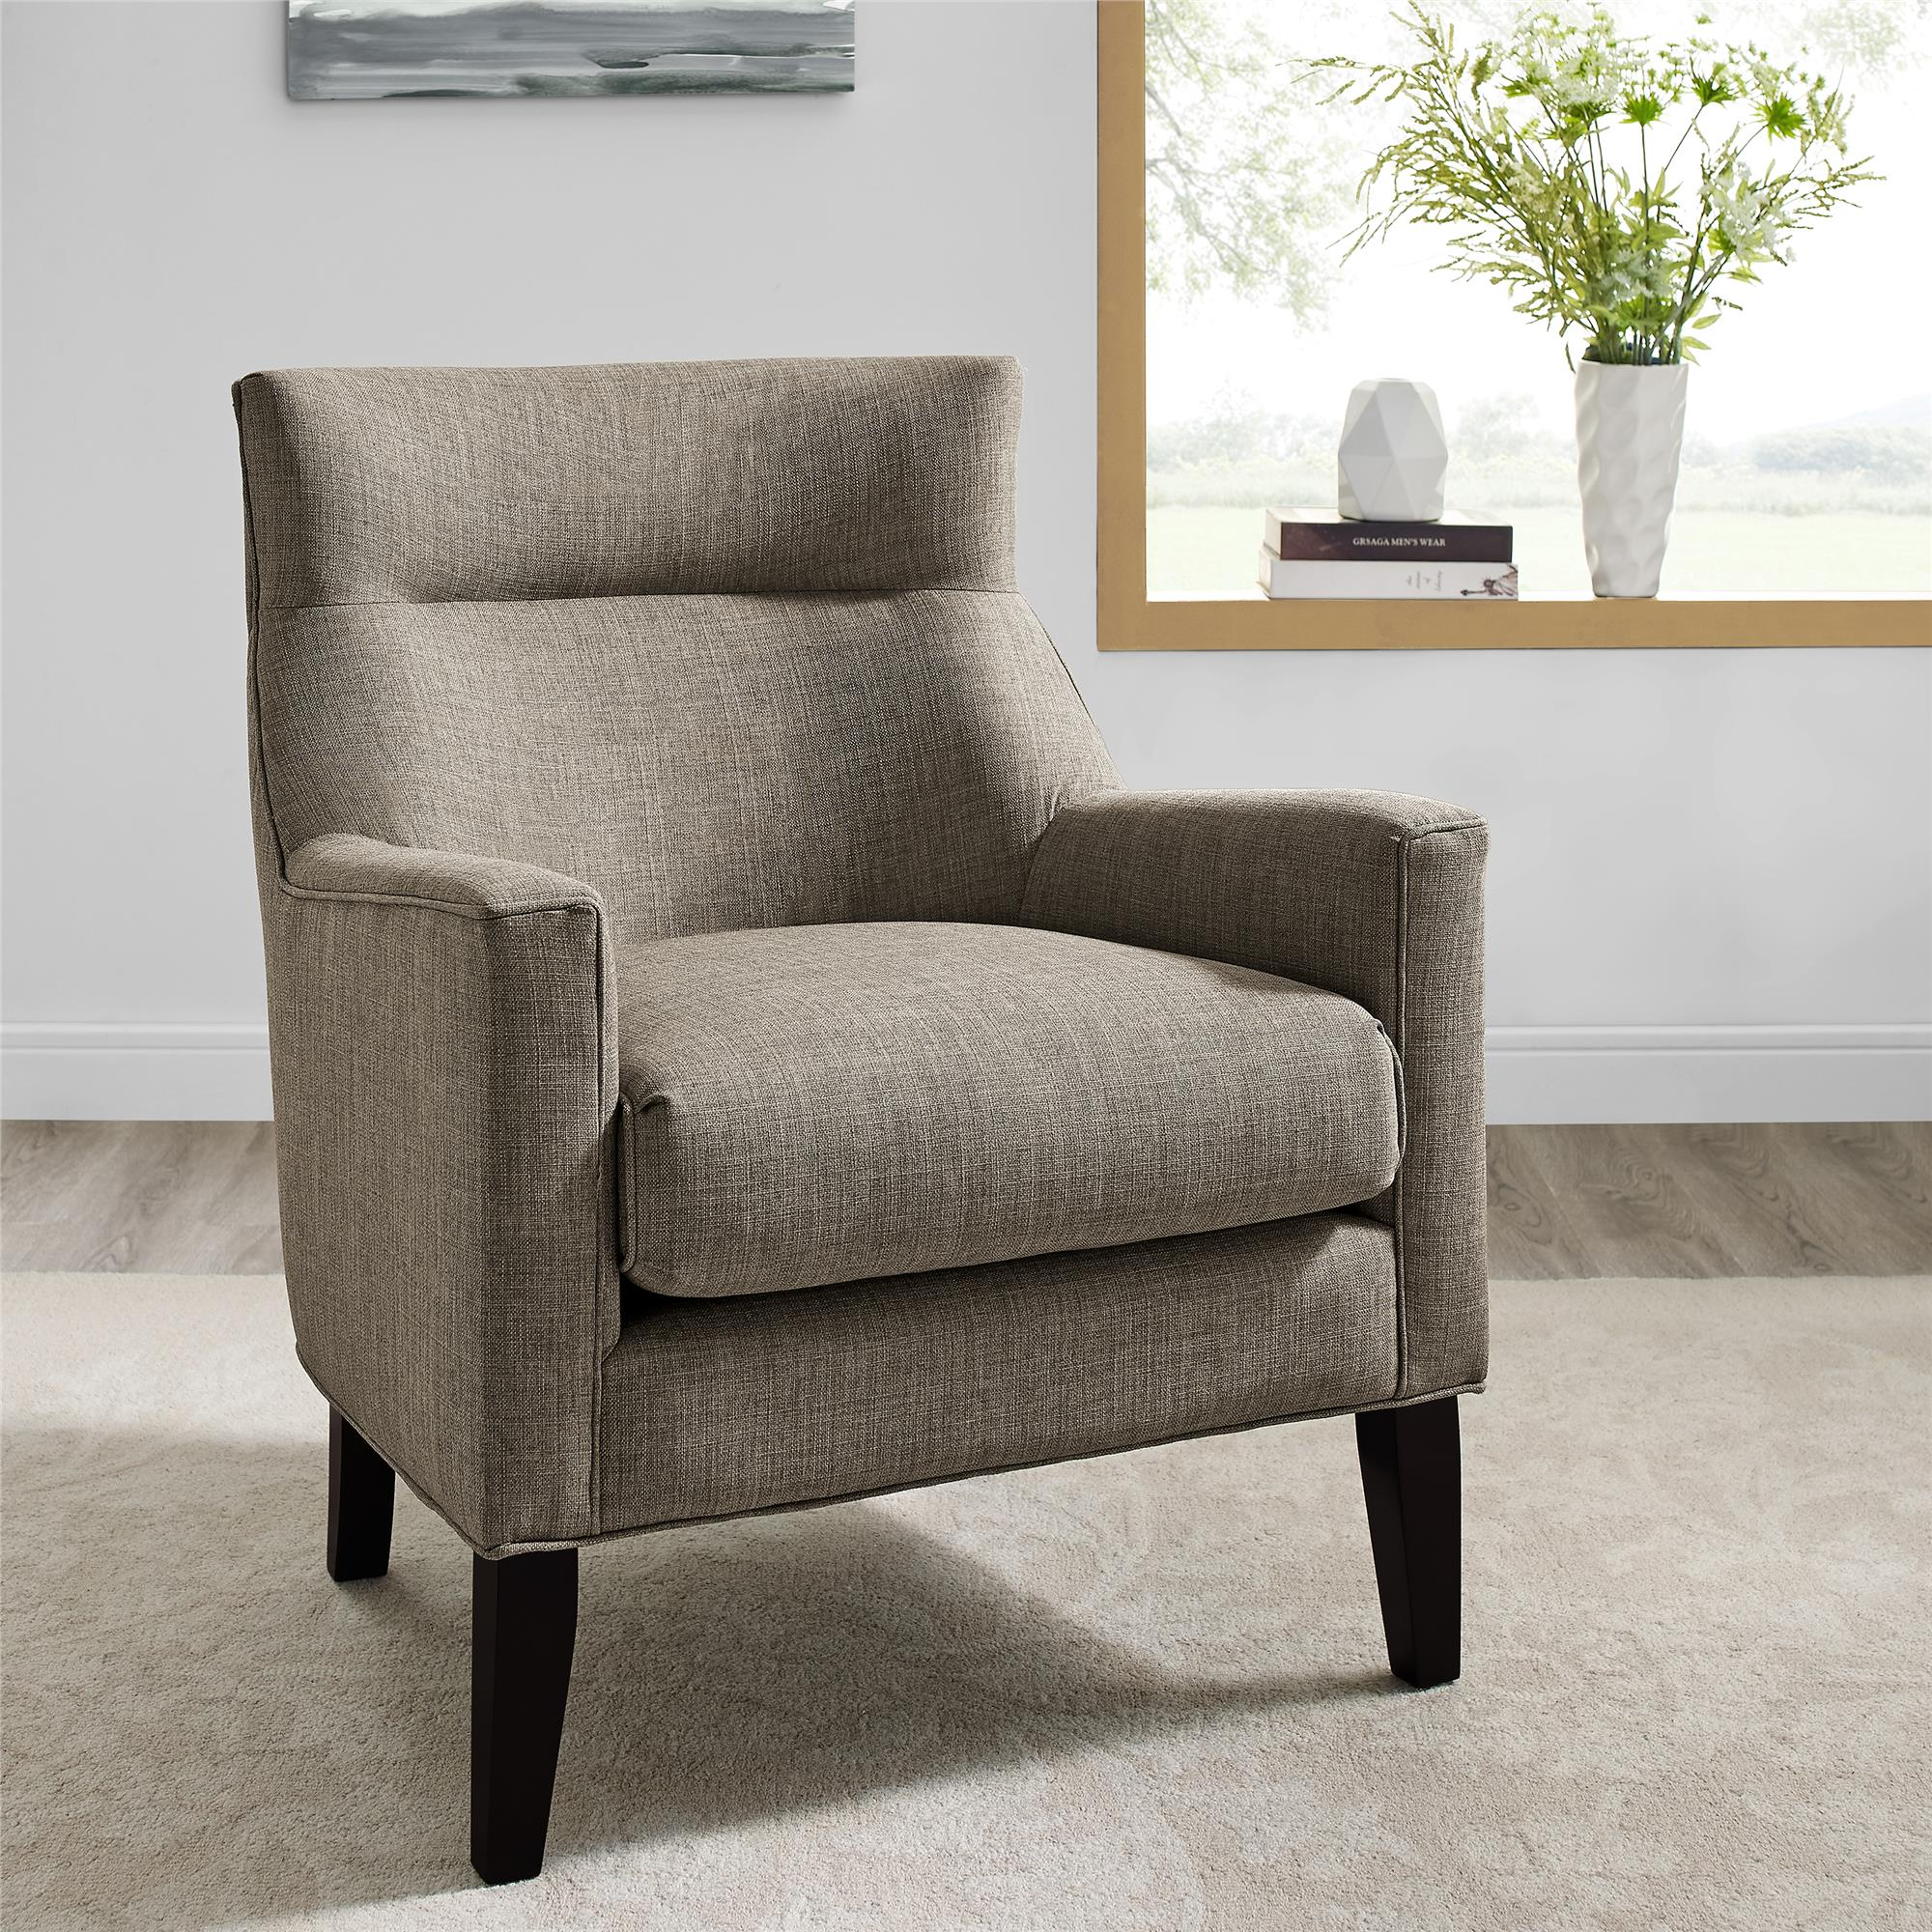 Sears Accent Chairs Dorel Home Furnishings Dori Dark Taupe Accent Chair